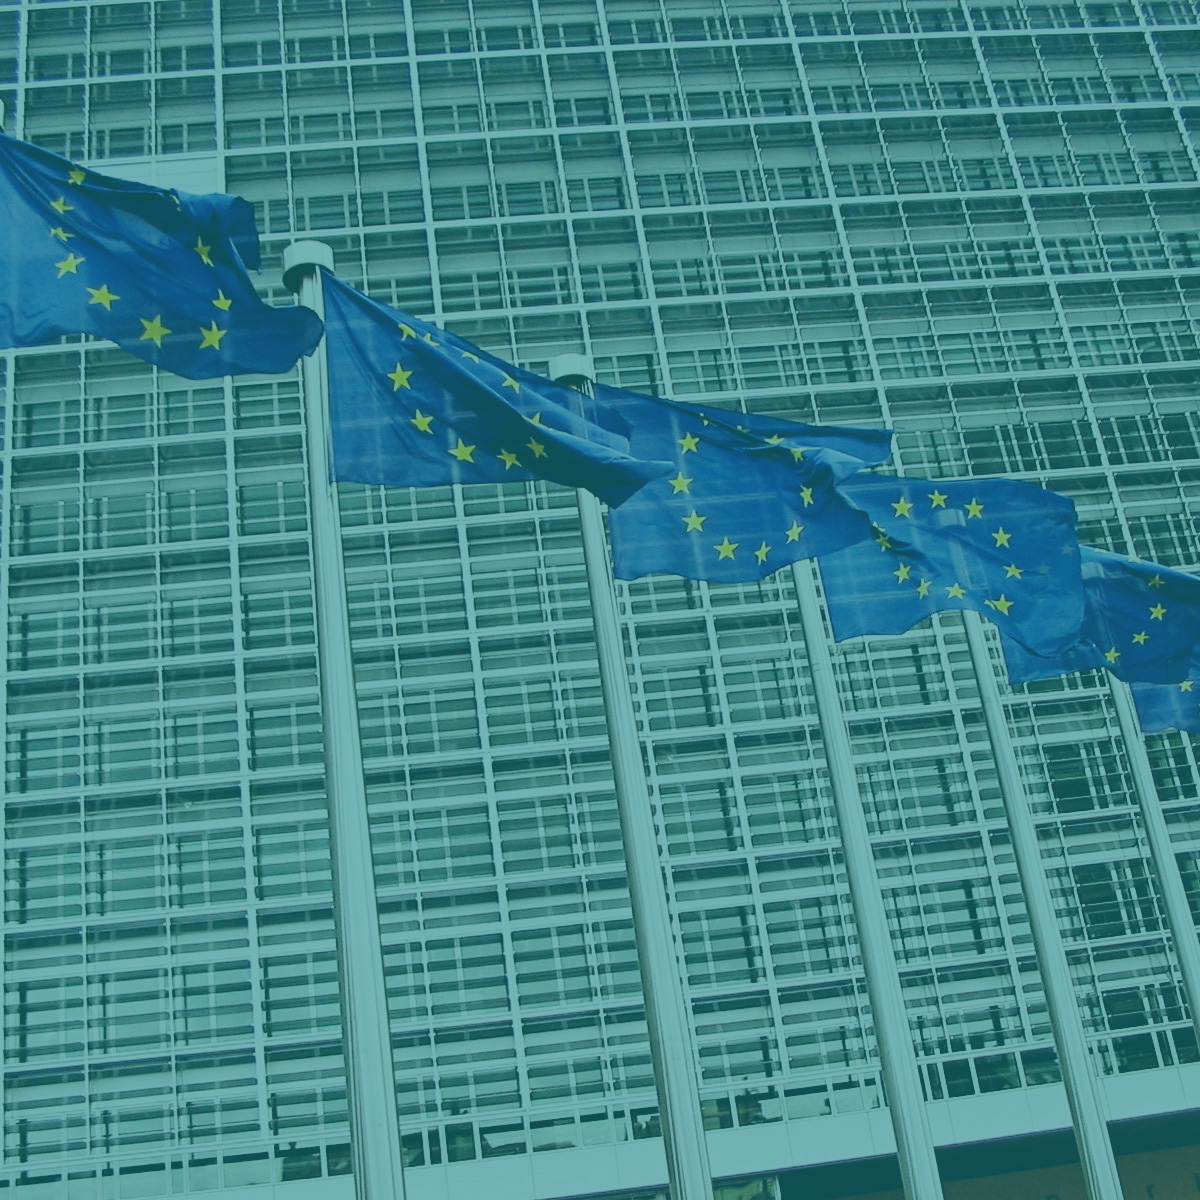 We are invigorating European leadership - In partnership with European Art of Hosting colleagues,we are building greater participation and innovation across the European Commission leadership.European Commission + The European Union Agency for Fundamental Rights (2010—)